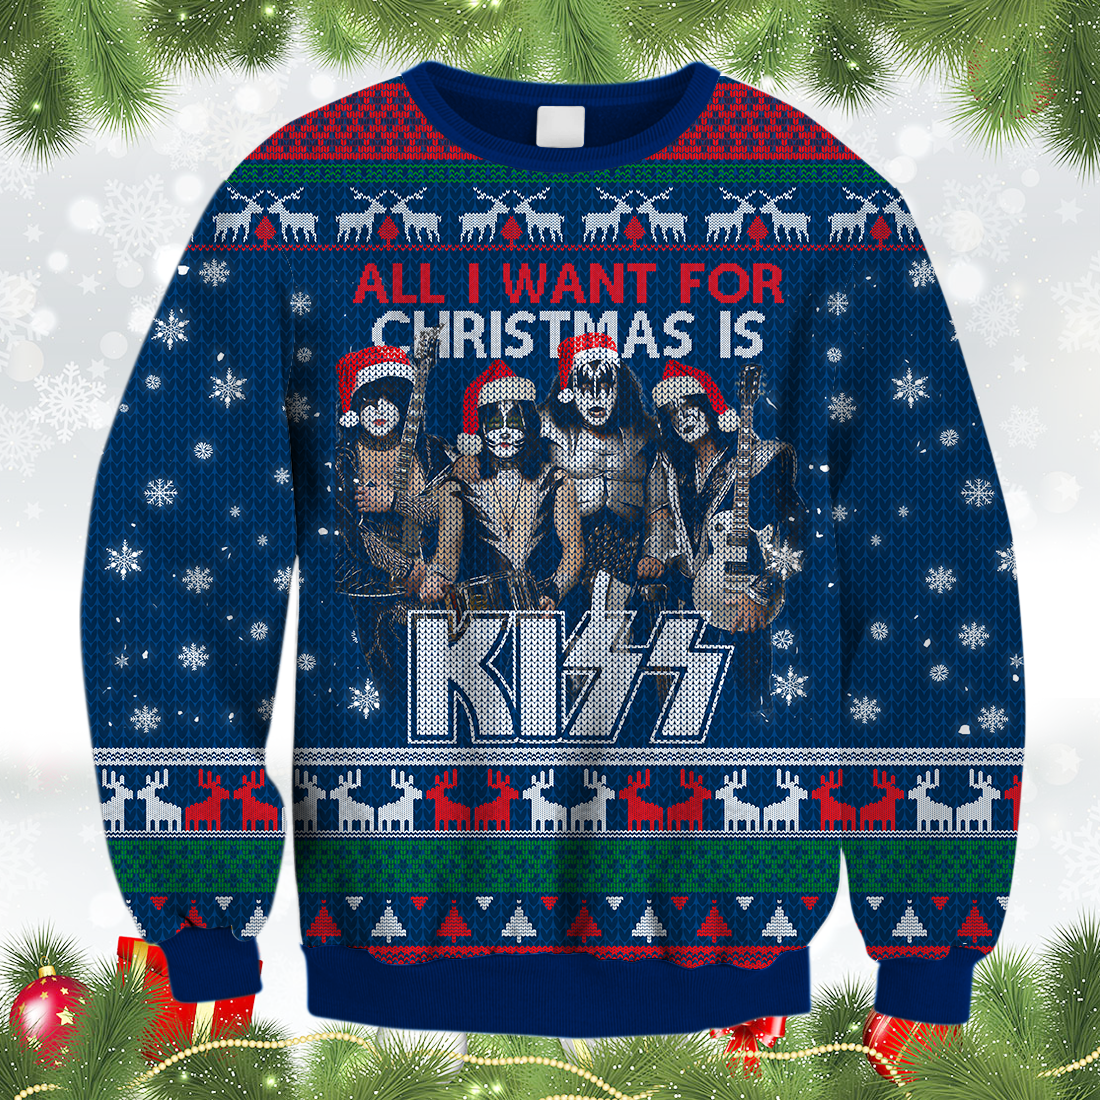 All I Want For Christmas Is Kizz Ugly Sweater All Over